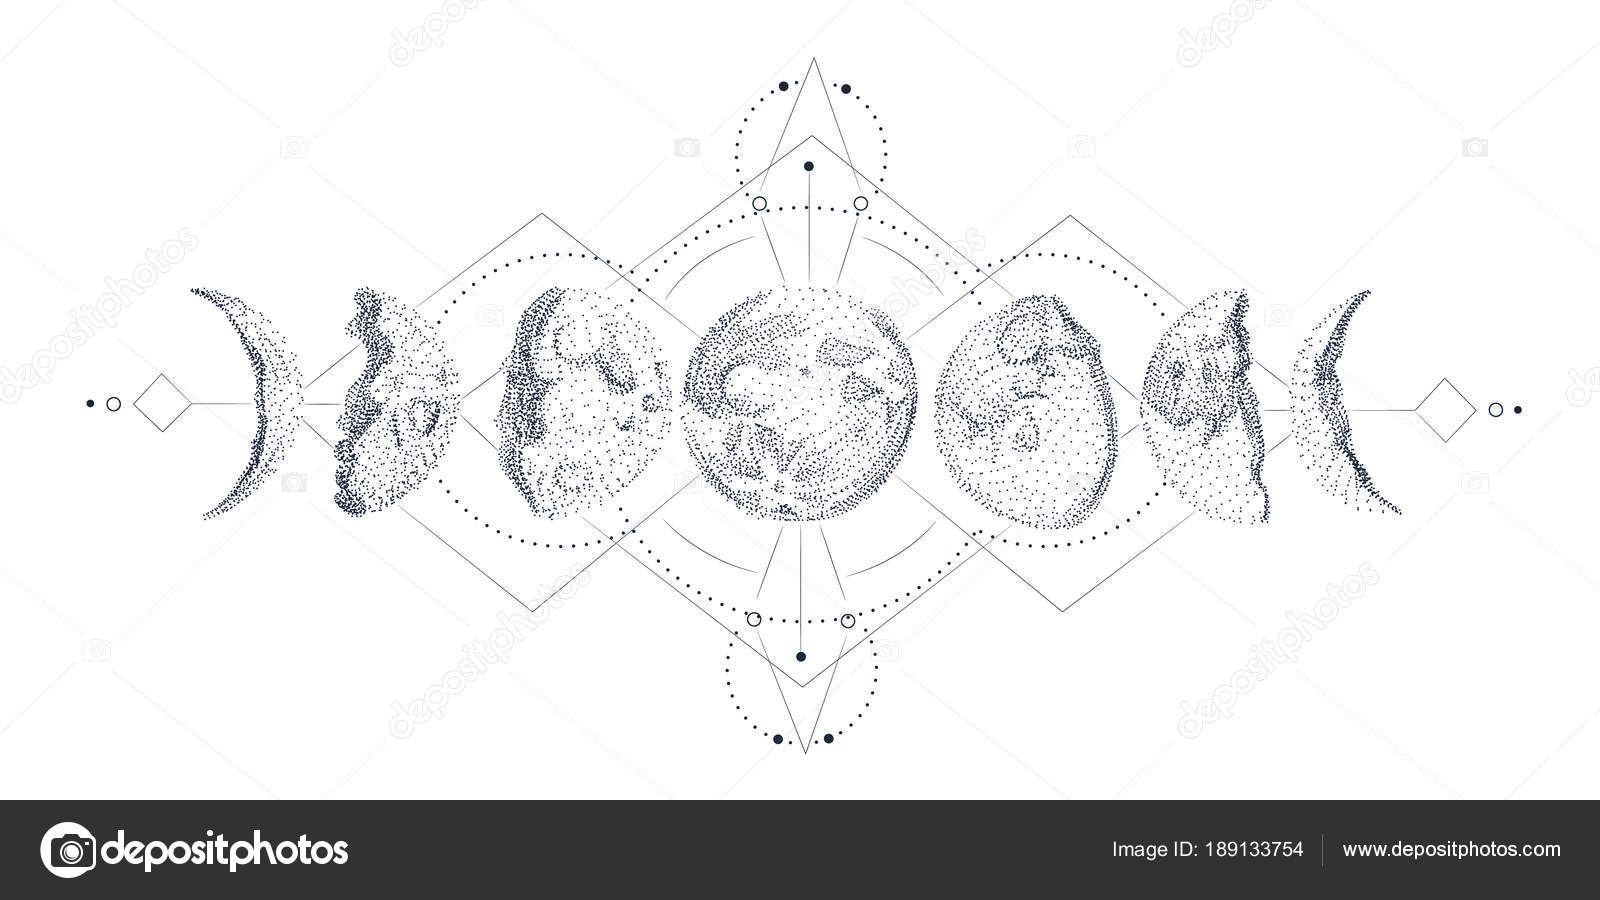 Vector Illustration Set Moon Phases Different Stages Moonlight Moonshine Diagram Related Keywords Suggestions Of Activity In Vintage Engraving Style By Irkast Find Similar Images